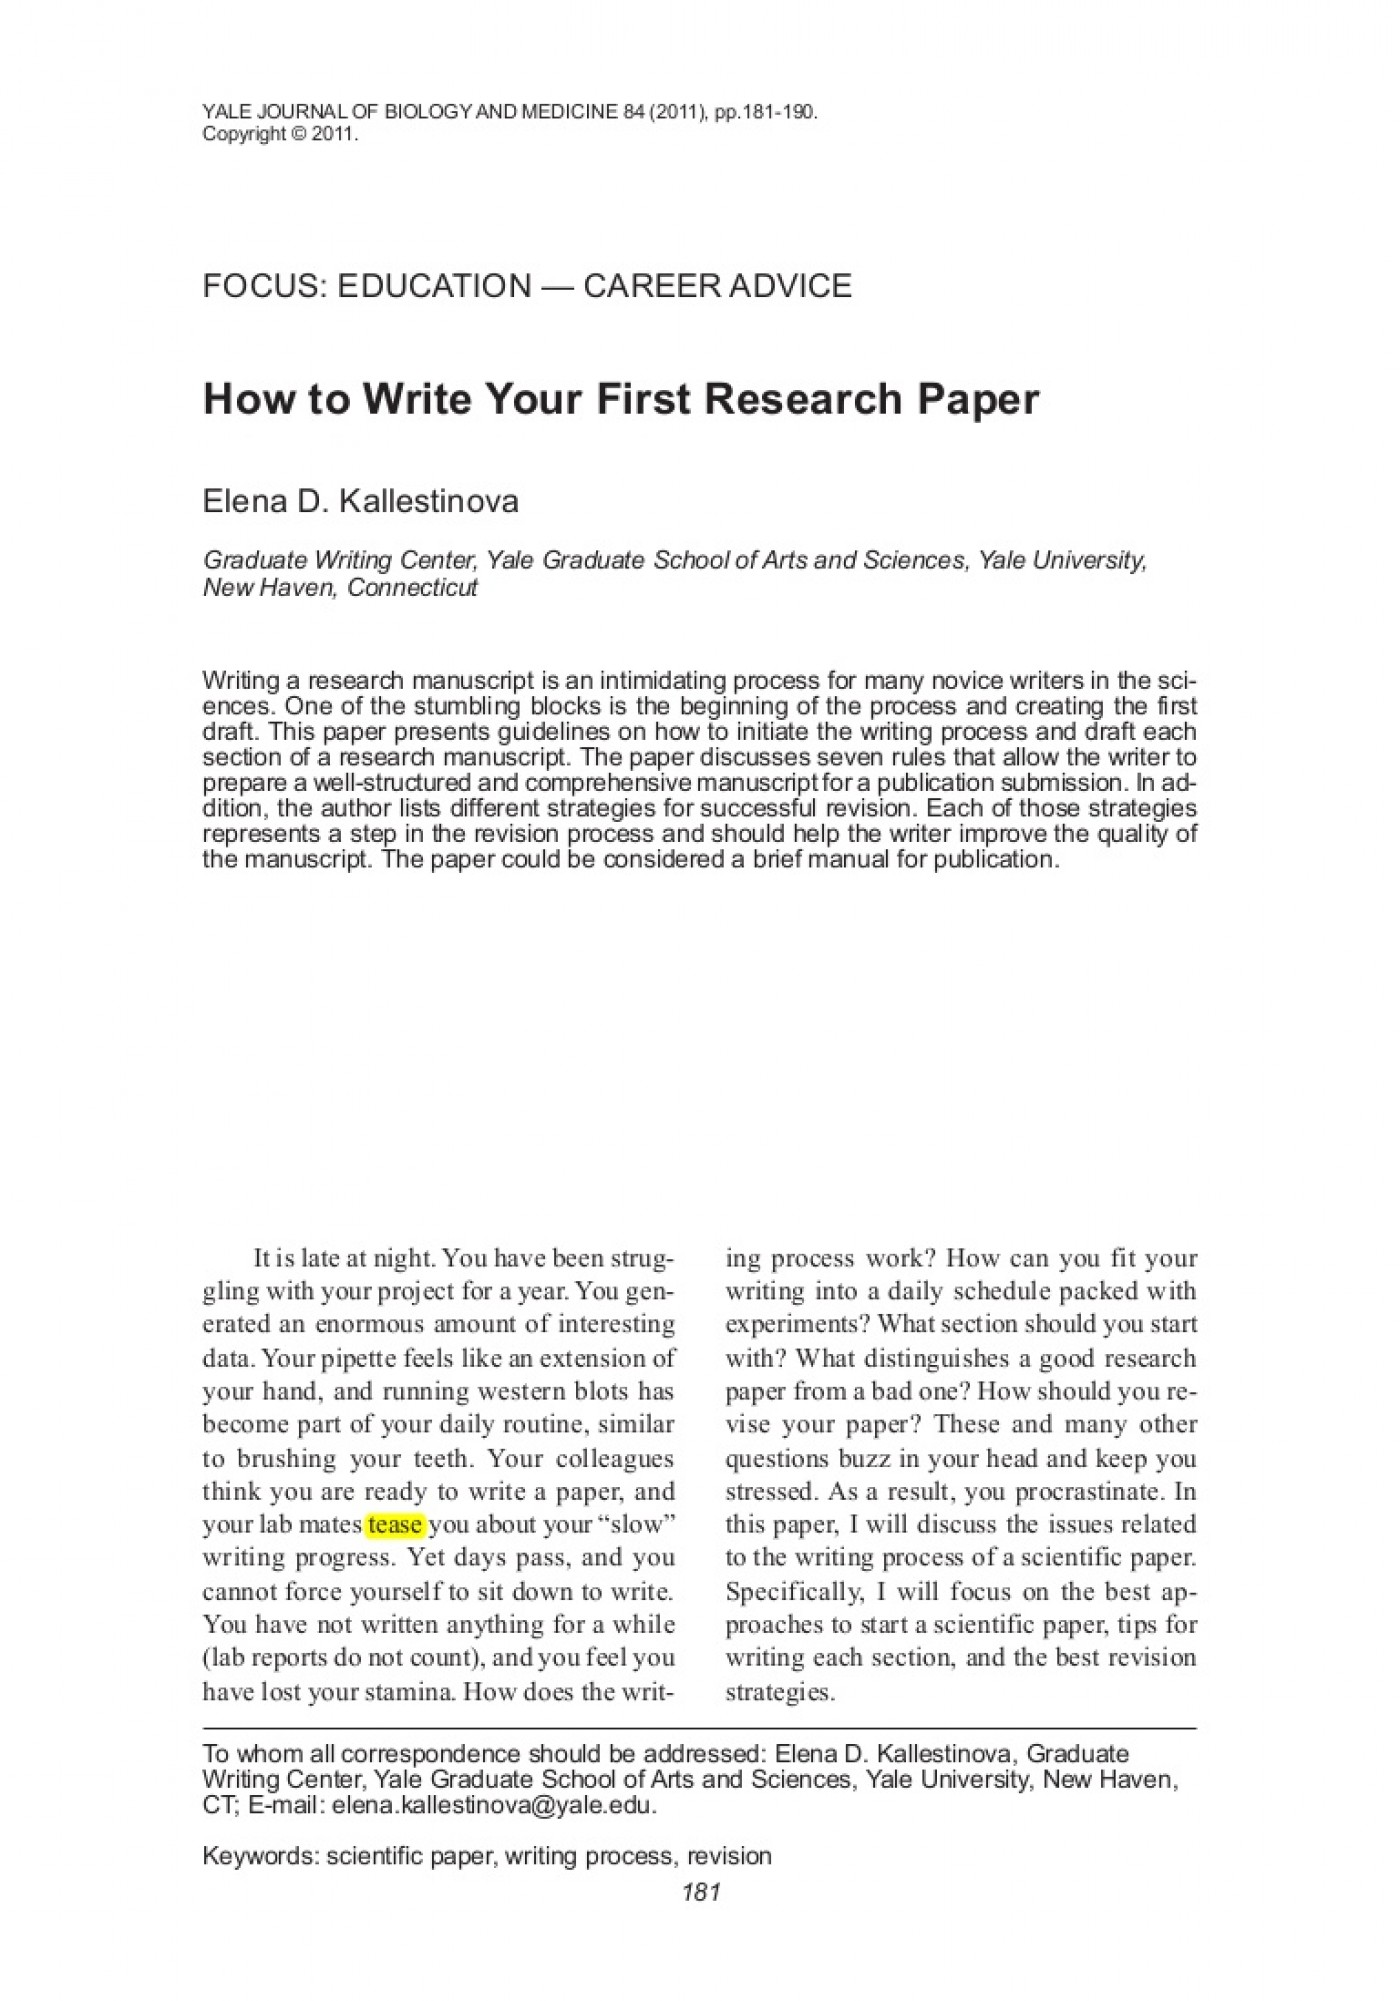 024 Research Paper Write Papers Howtowriteyourfirstresearchpaper Lva1 App6891 Thumbnail Frightening In Latex My For Me Online Free 1400